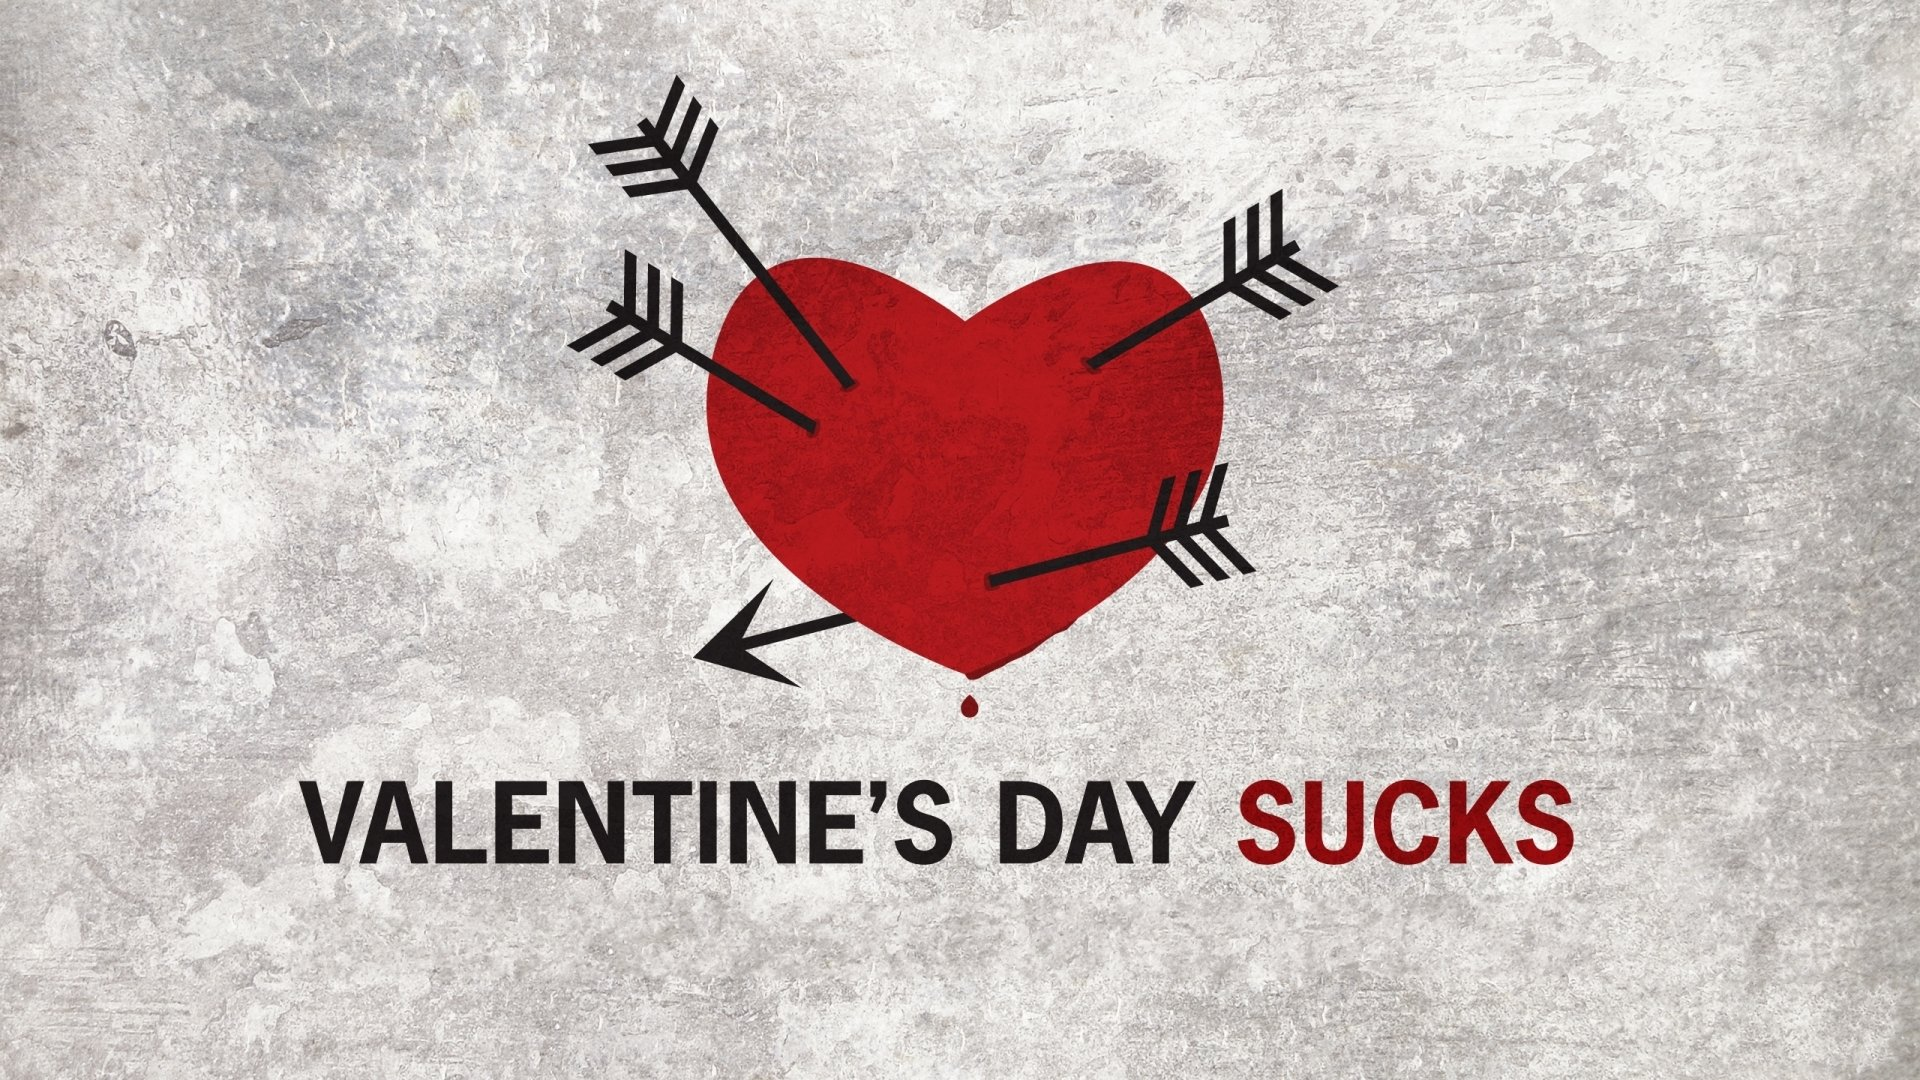 Humor - Valentines Day  Wallpaper